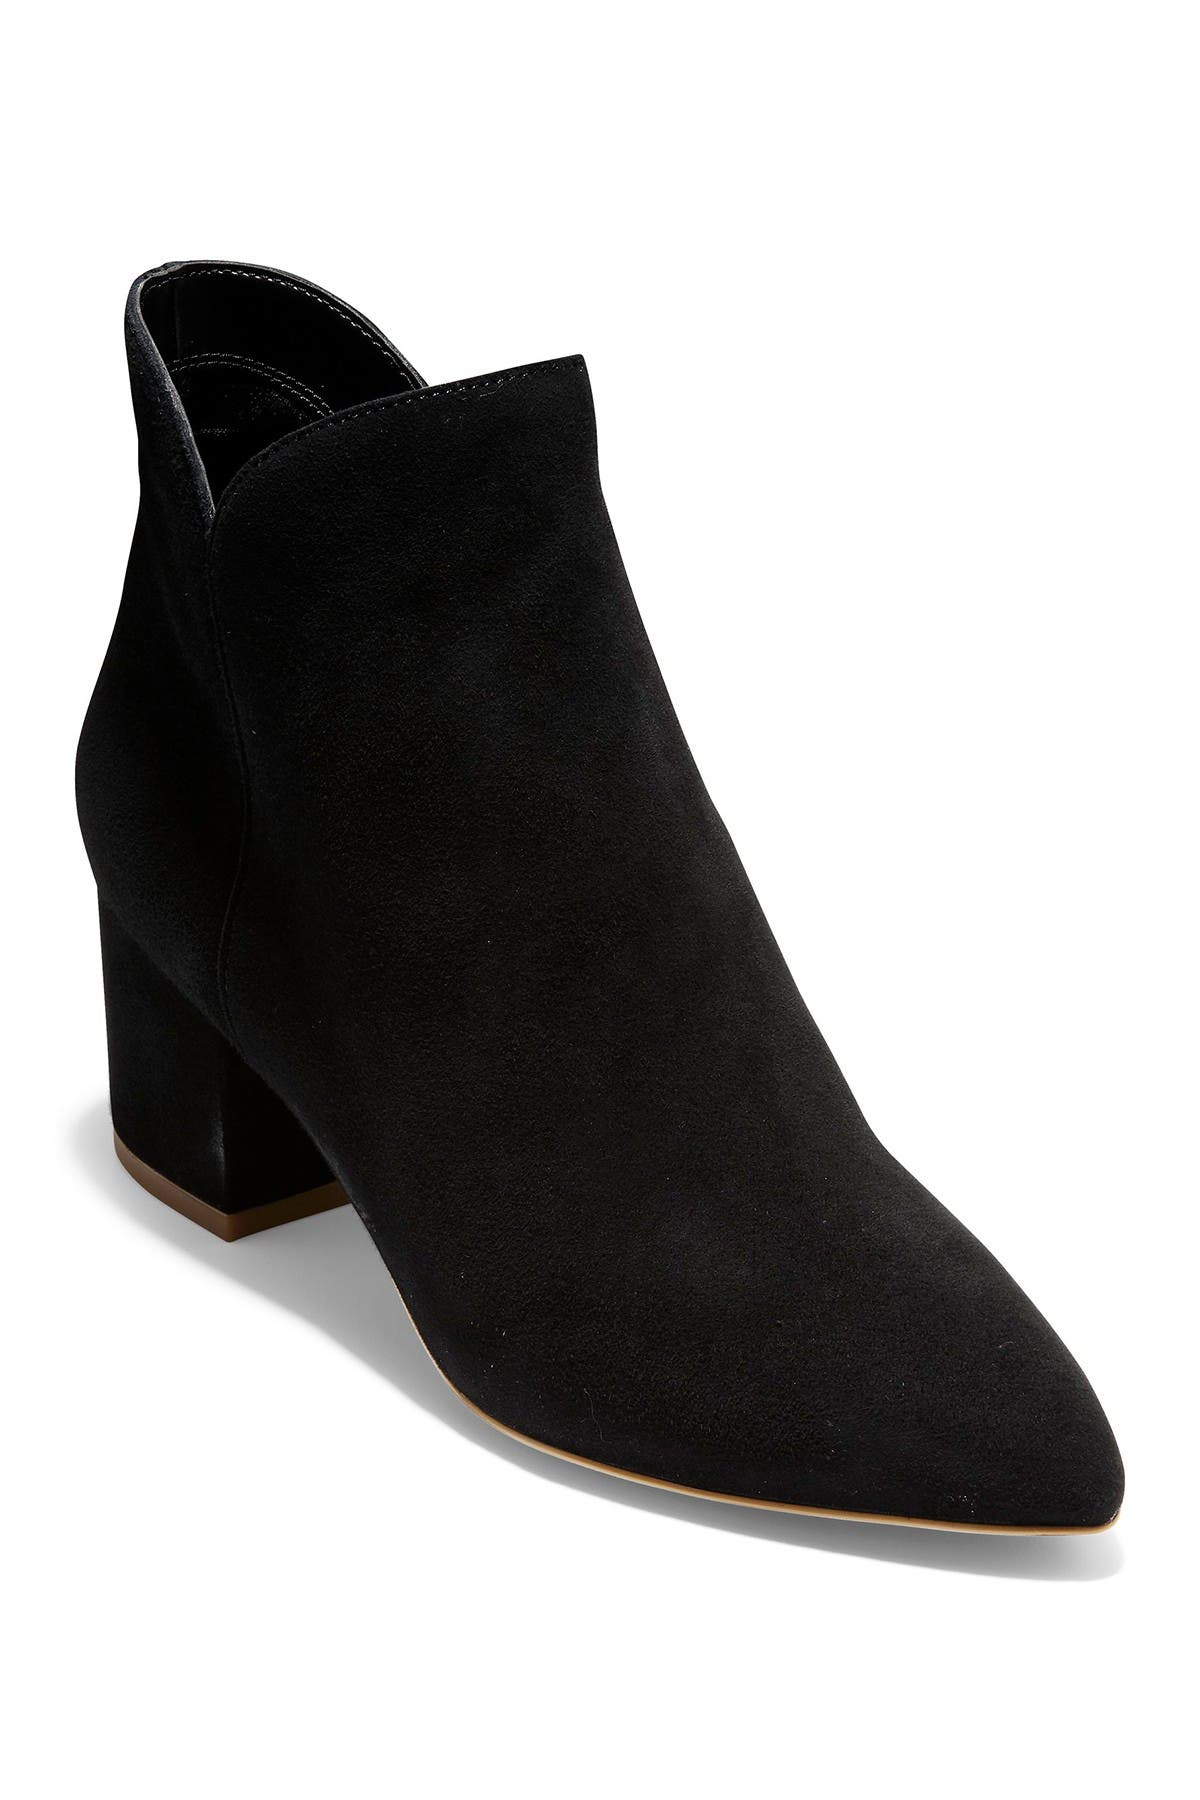 Elyse Suede Pointed Toe Ankle Boot